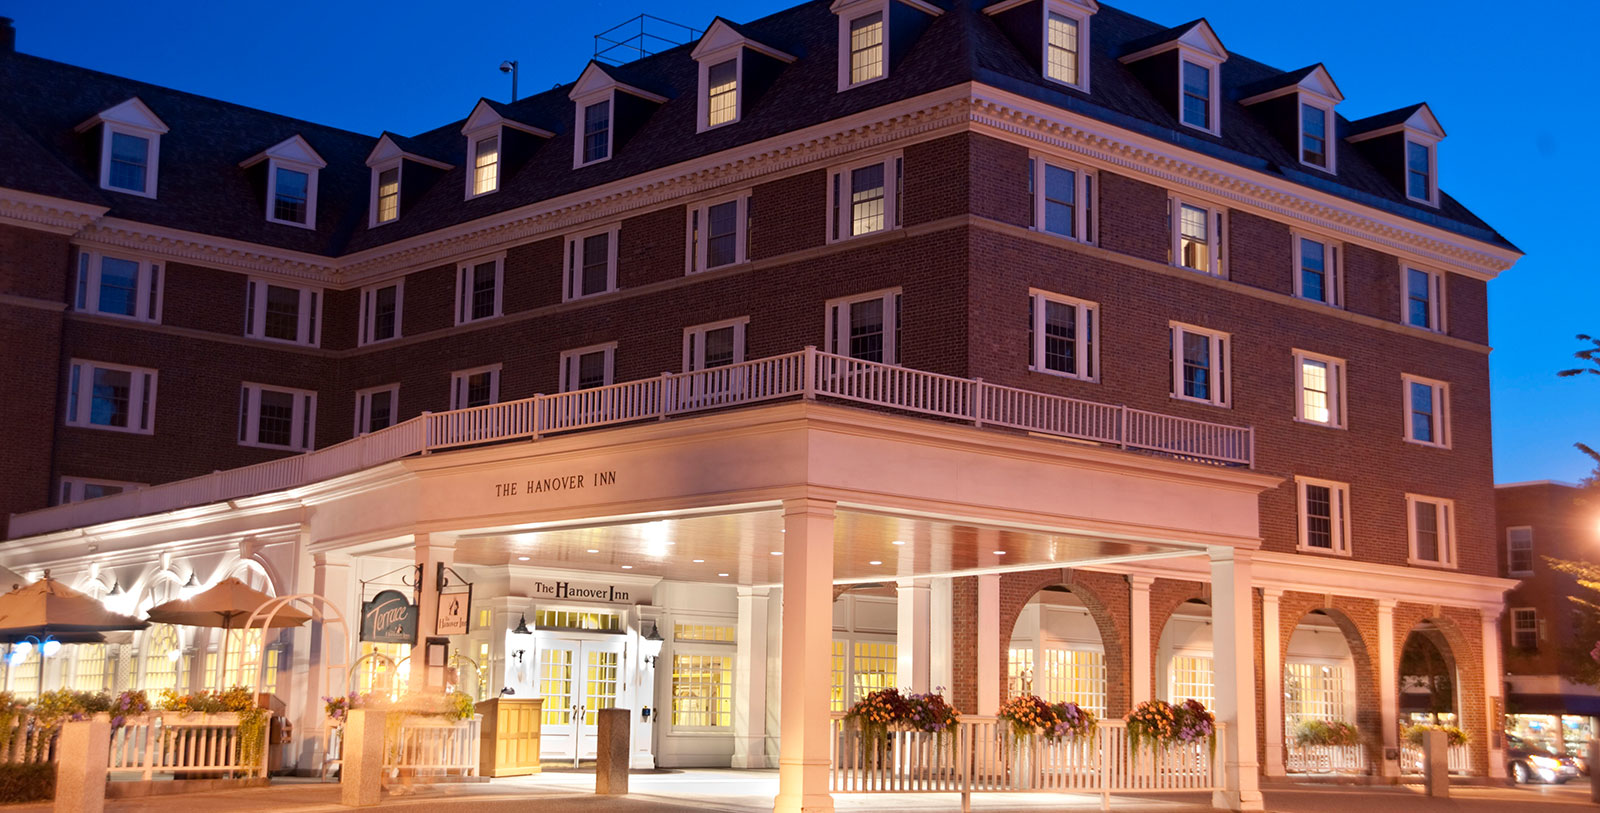 Image of hotel exterior Hanover Inn Dartmouth, 1780, Member of Historic Hotels of America, in Hanover, New Hampshire, Special Offers, Discounted Rates, Families, Romantic Escape, Honeymoons, Anniversaries, Reunions